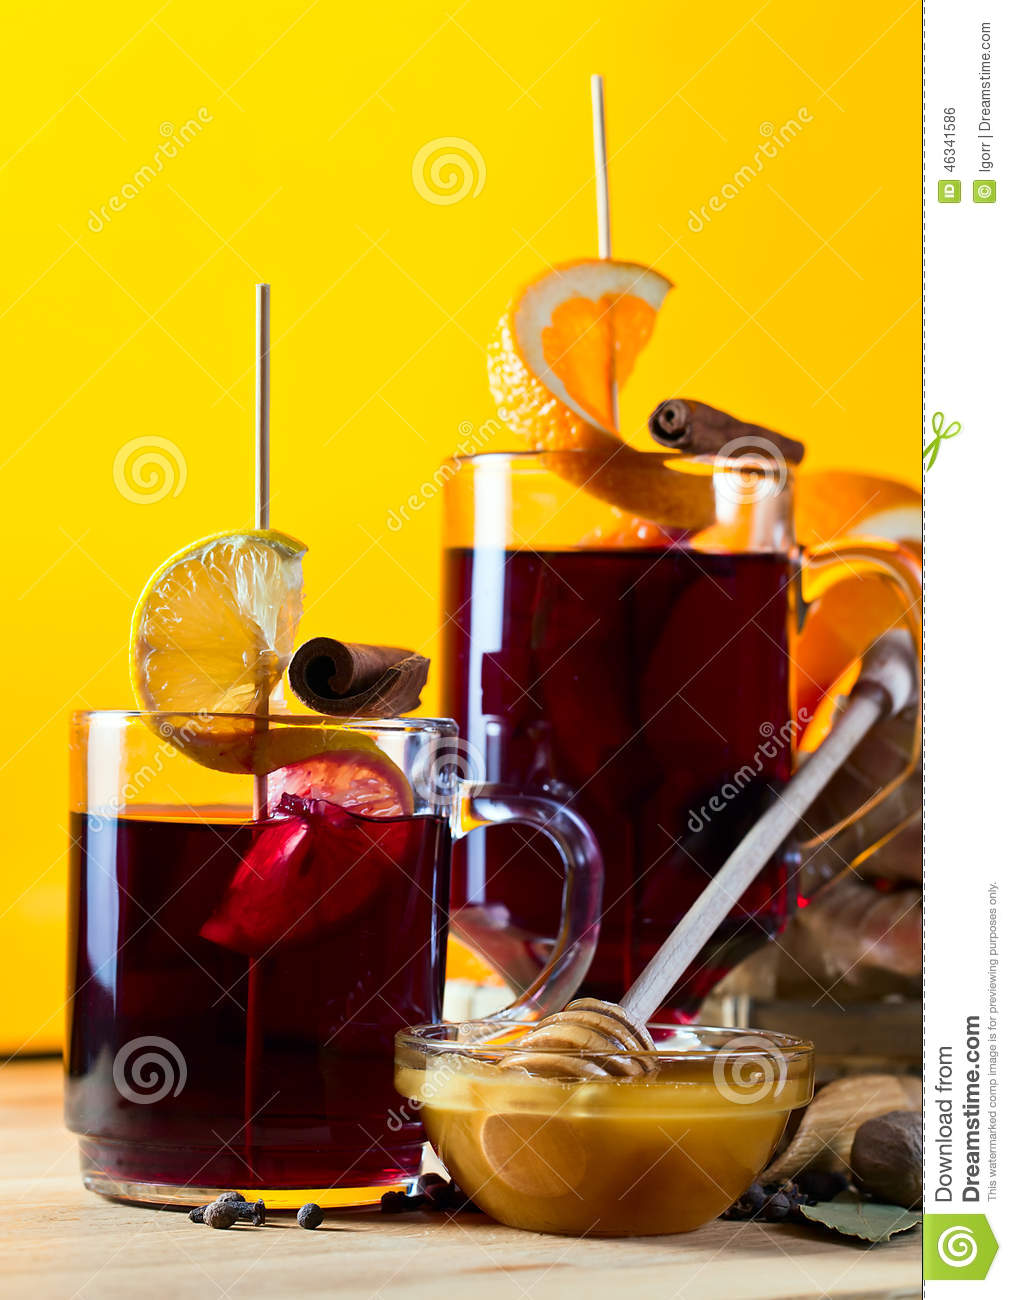 Mulled Wine With Spices And Fruits Stock Photo - Image: 46341586